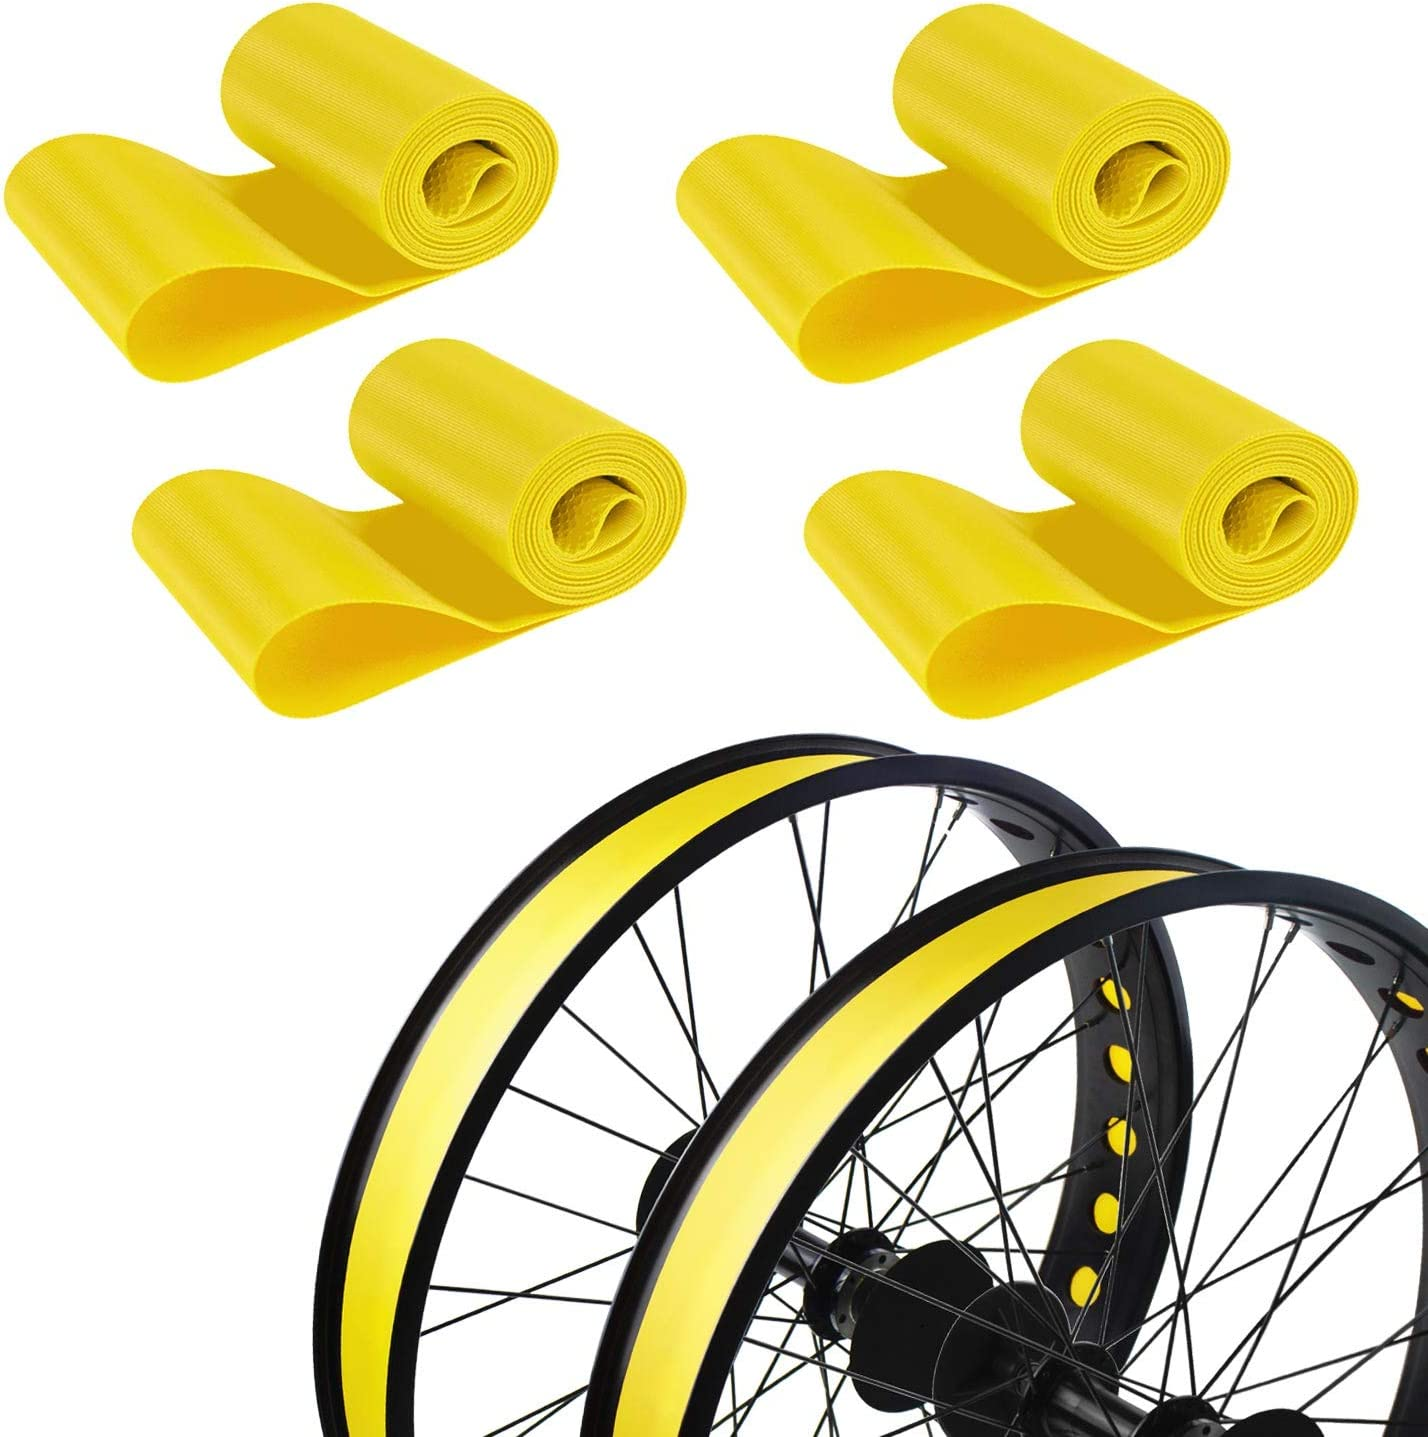 Addmotor Rim Strip Rim Tape 20 inch Fat tire Liner PVC Inner Tube Cushion Protector Anti Puncture for Bikes 4PCS